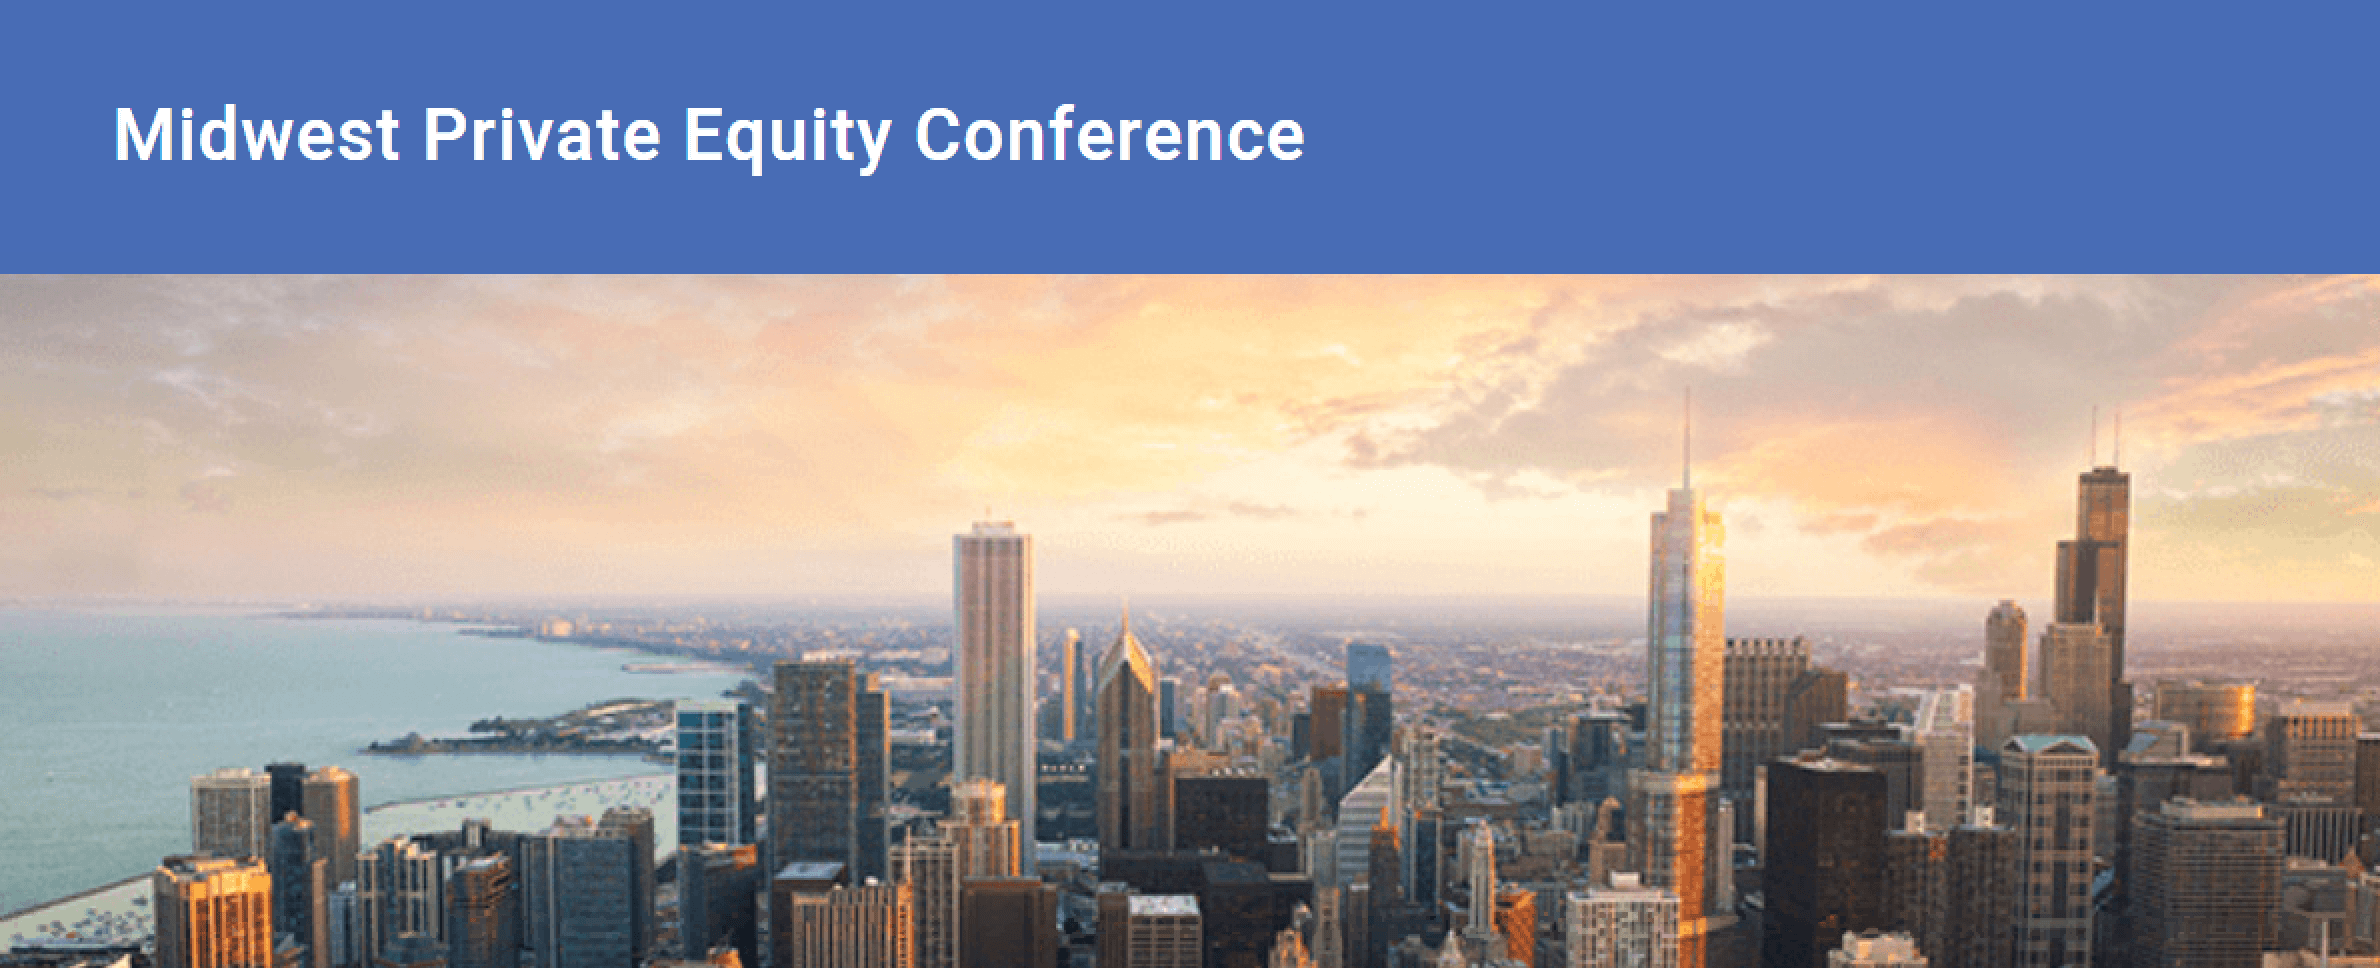 Midwest Private Equity Conference